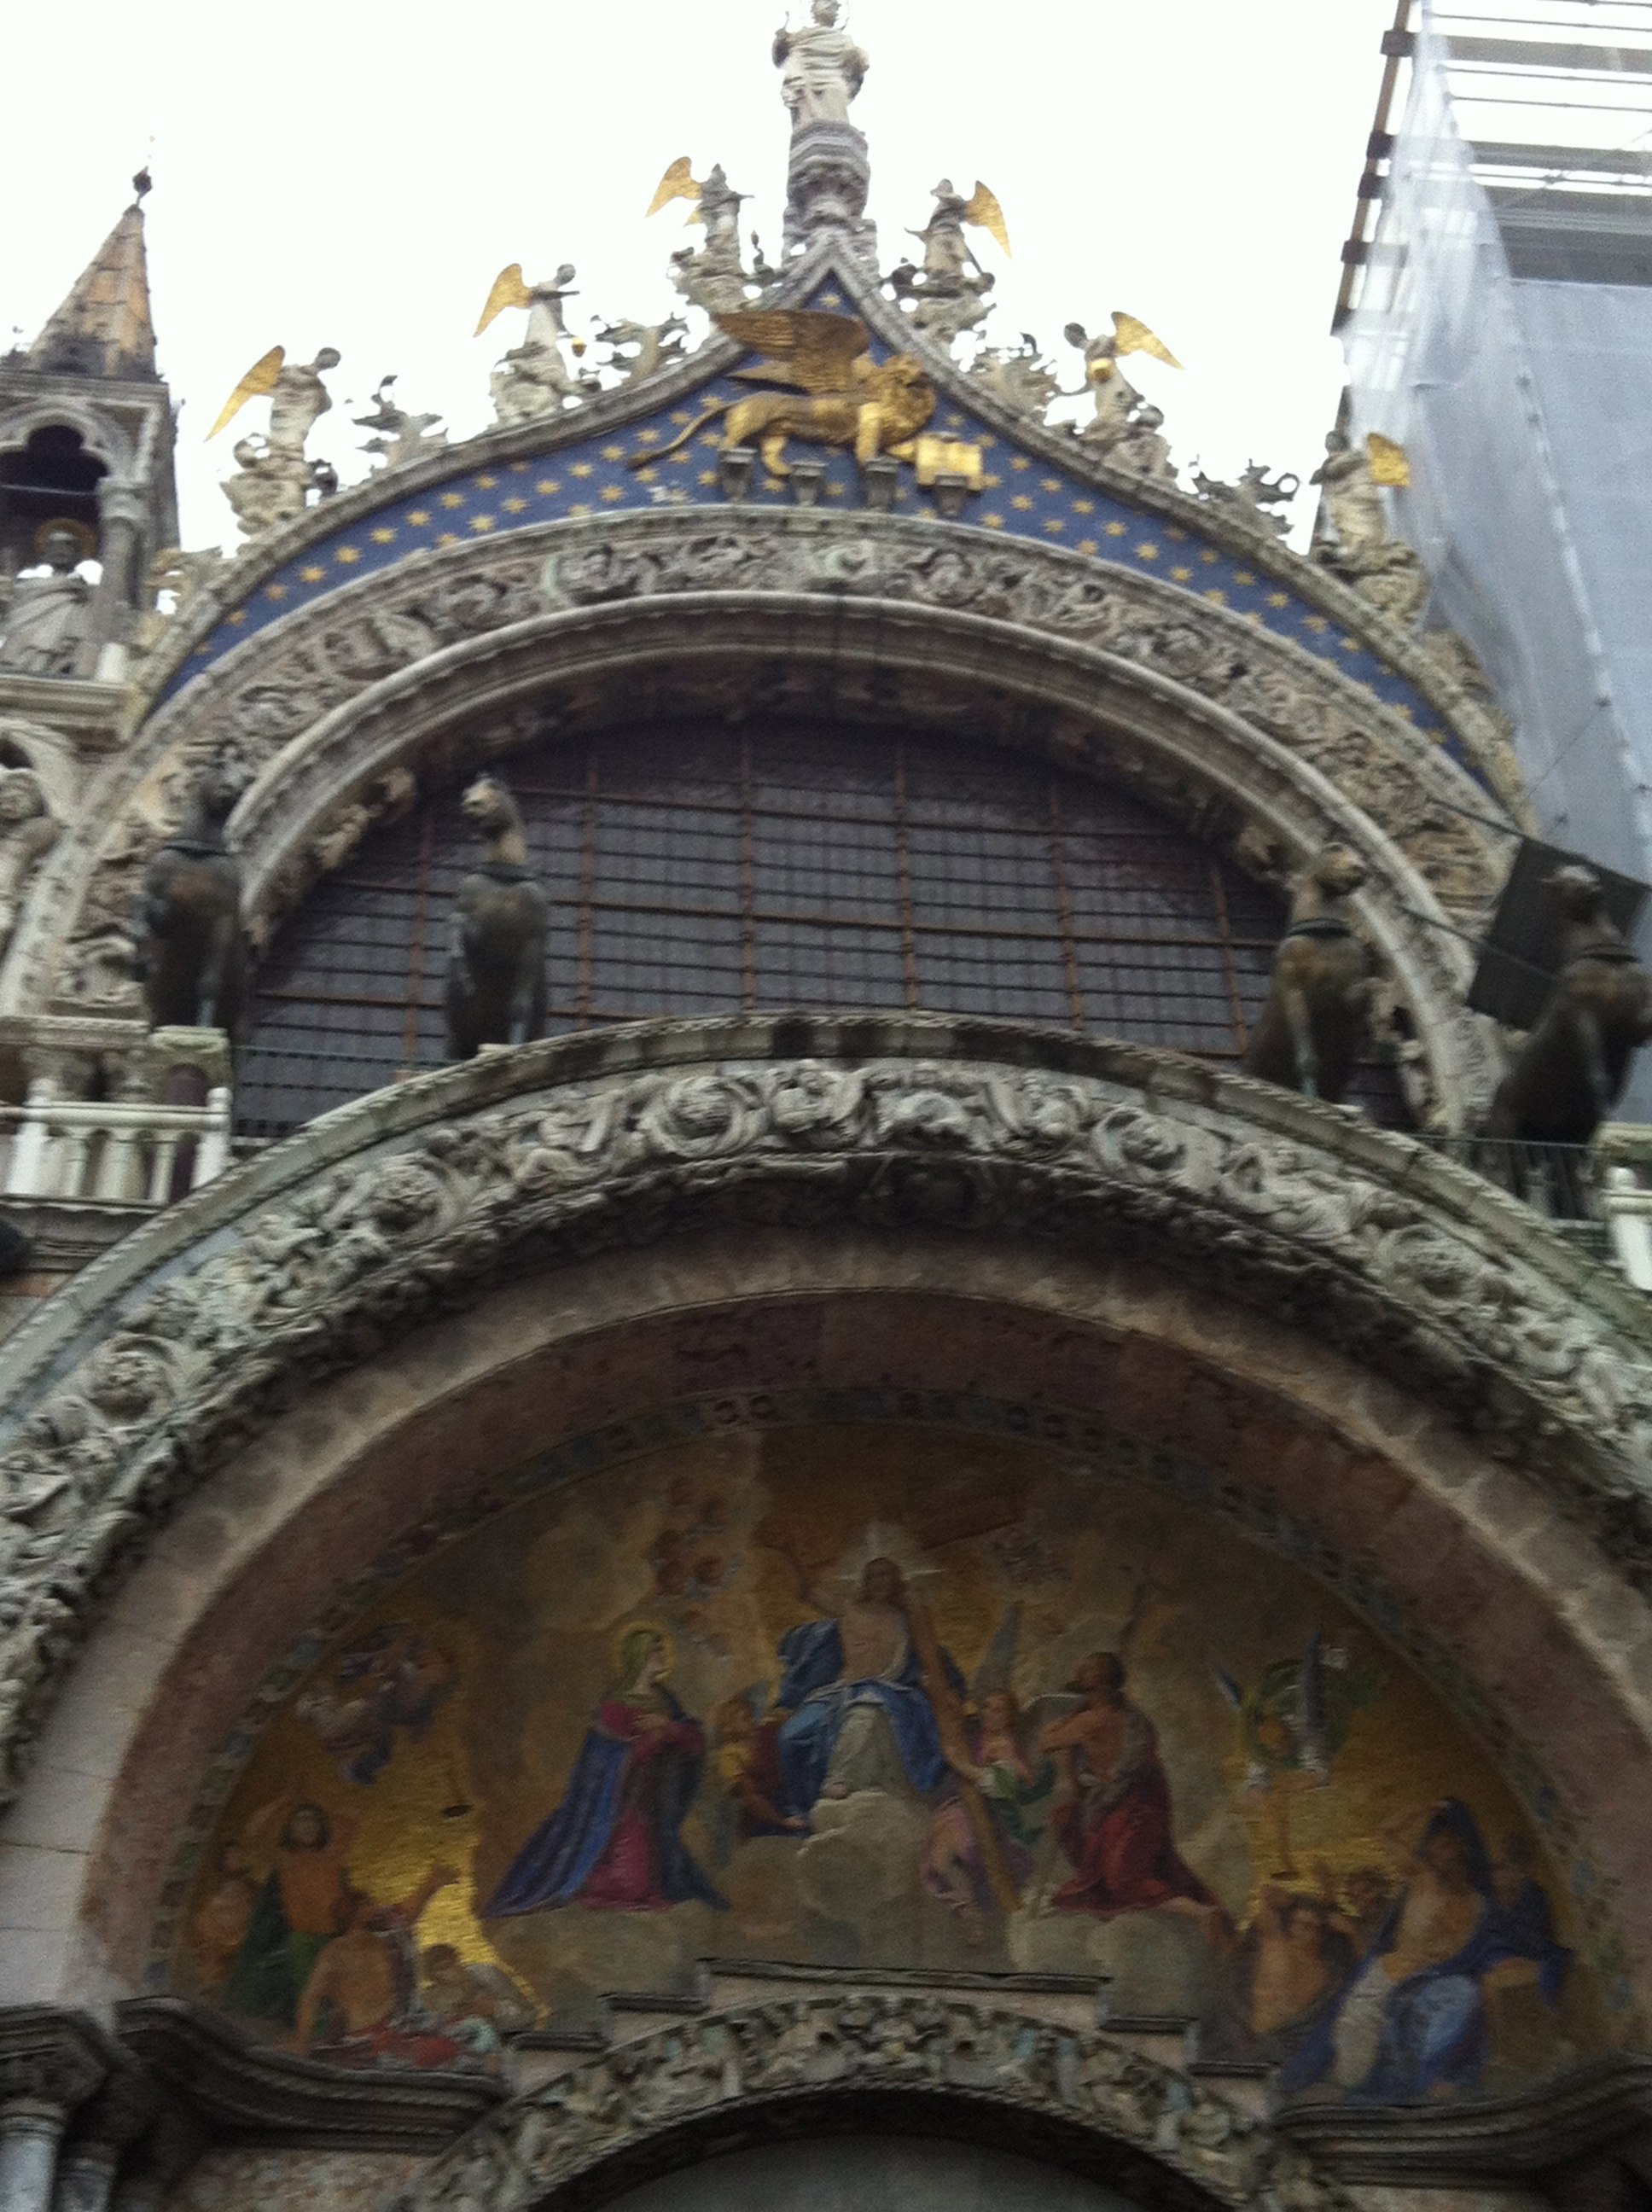 St. Mark's Basilica outside